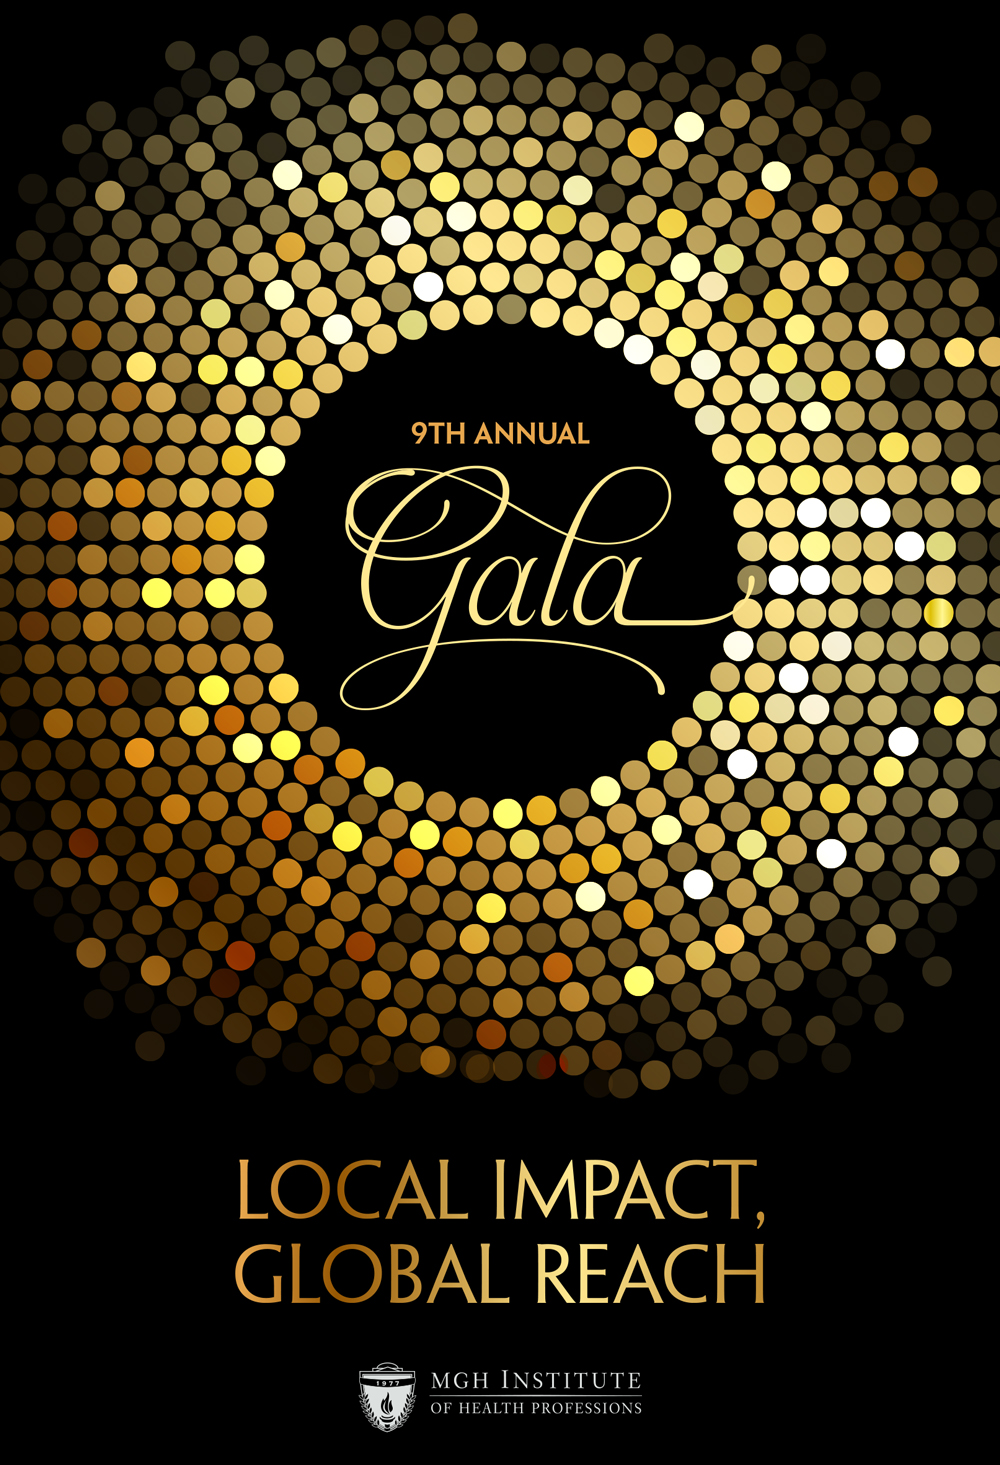 MGH-IHP-Gala-Invitation